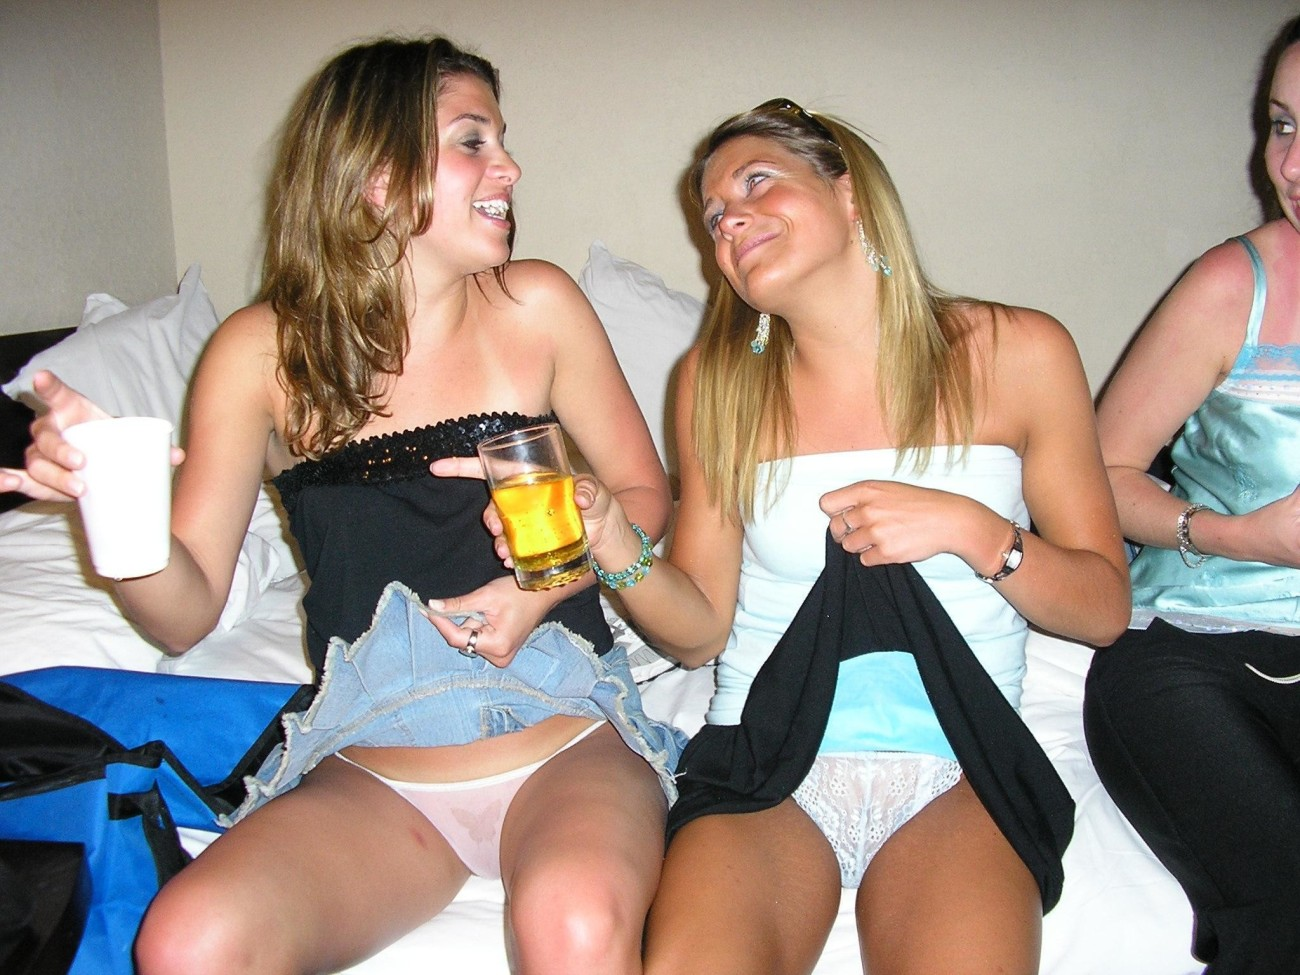 Drunk College Girls Upskirt Flashing Panties Pussies And Perky Tits